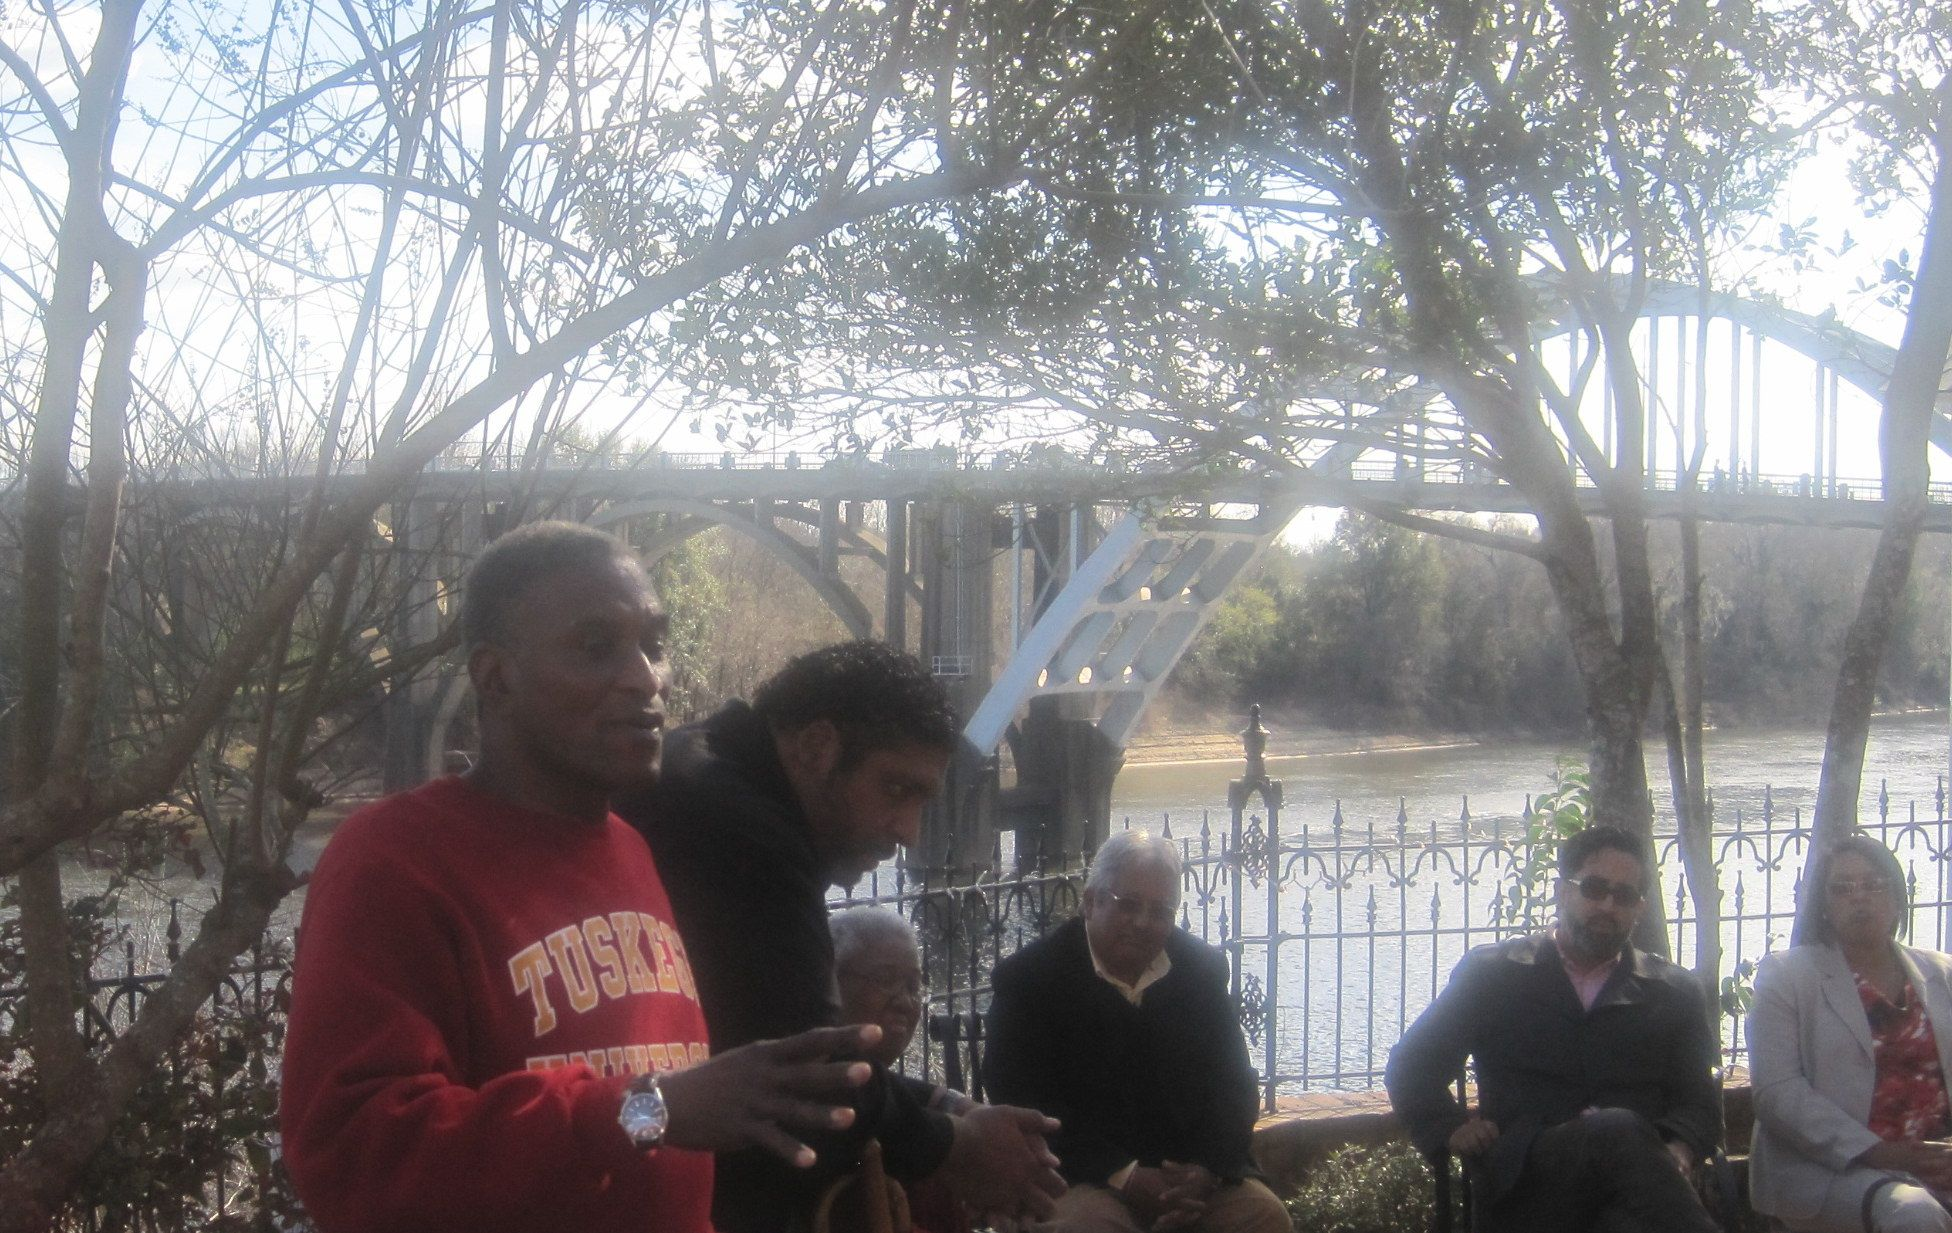 Mayor Johnny Ford and the Rev. William Barber in Selma, AL March 8, 2014